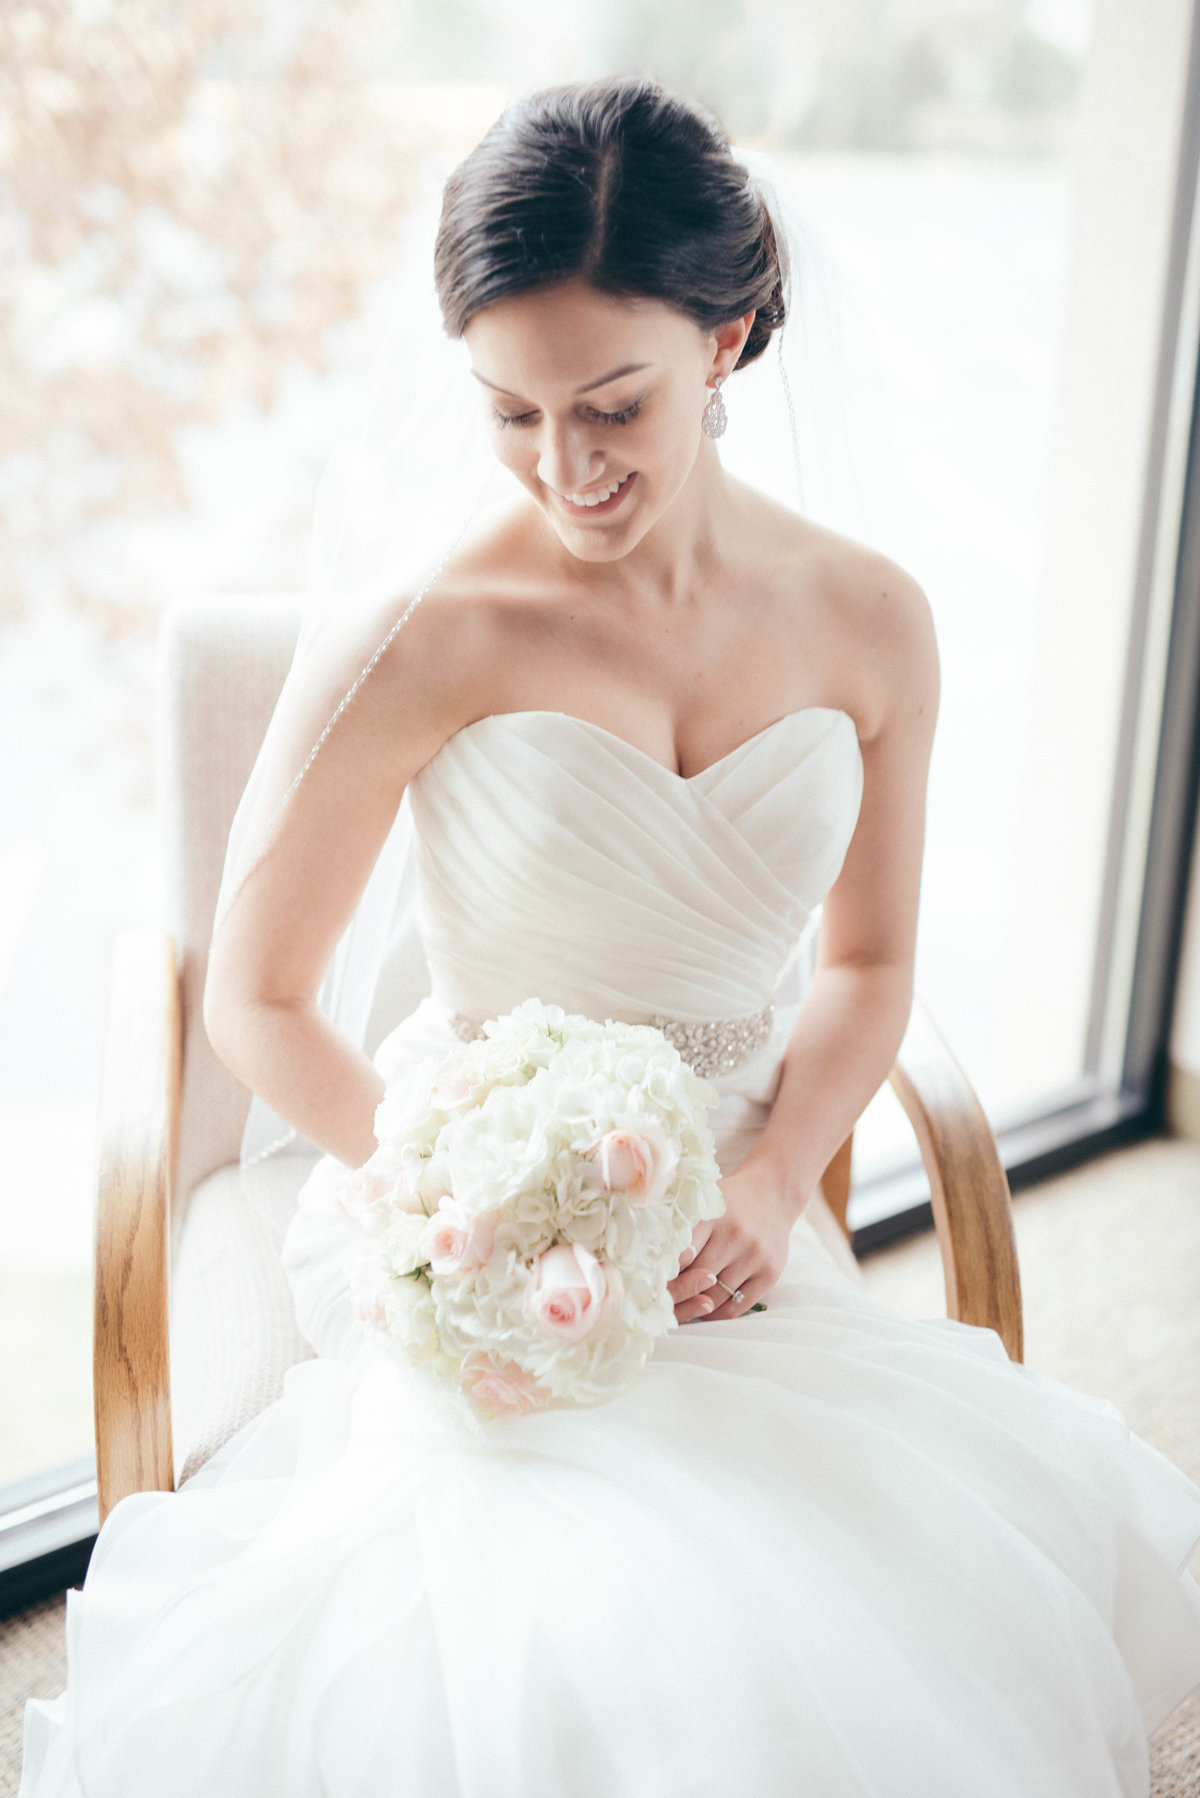 The sweetest bride and her bouquet